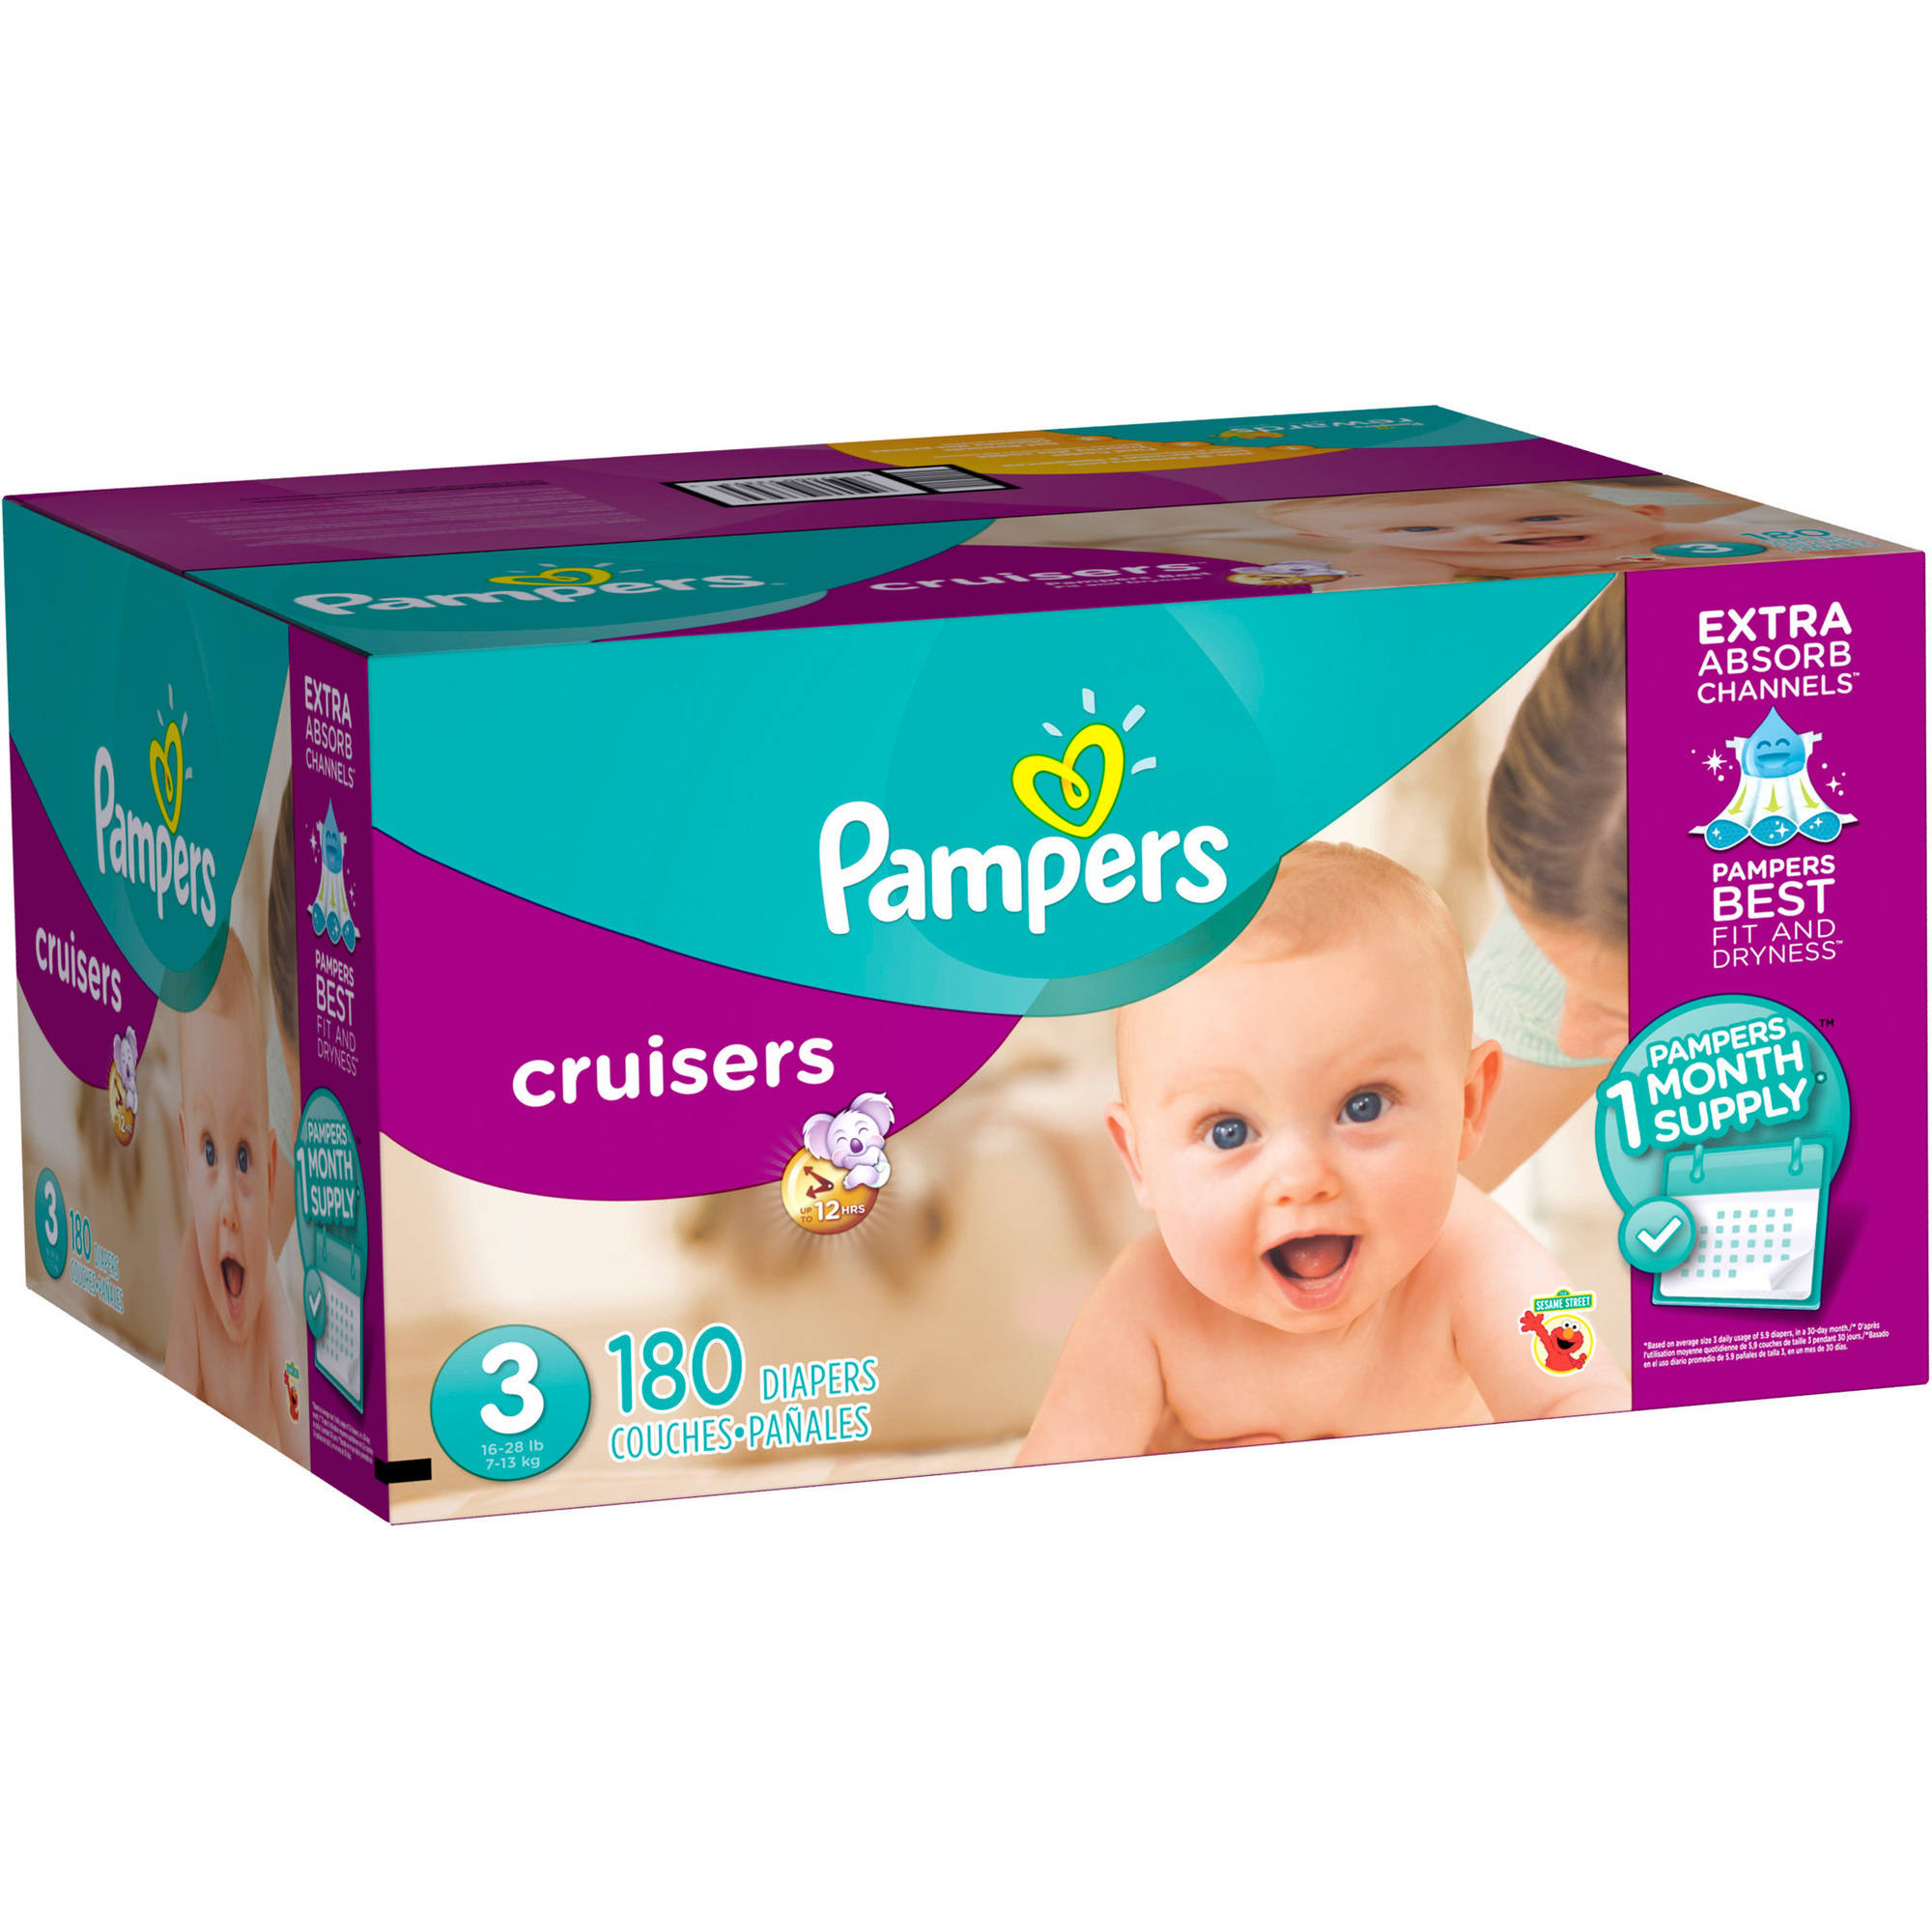 Pampers Cruisers Disposable Diapers Size 4, Count and Baby Wipes Sensitive Pop-Top Packs, Count. This collection includes: single pack of Pampers Cruisers Size 4 One Month Supply ( Ct) and Six Pampers Sensitive Pop-Top packs ( Ct), bundled together for you.